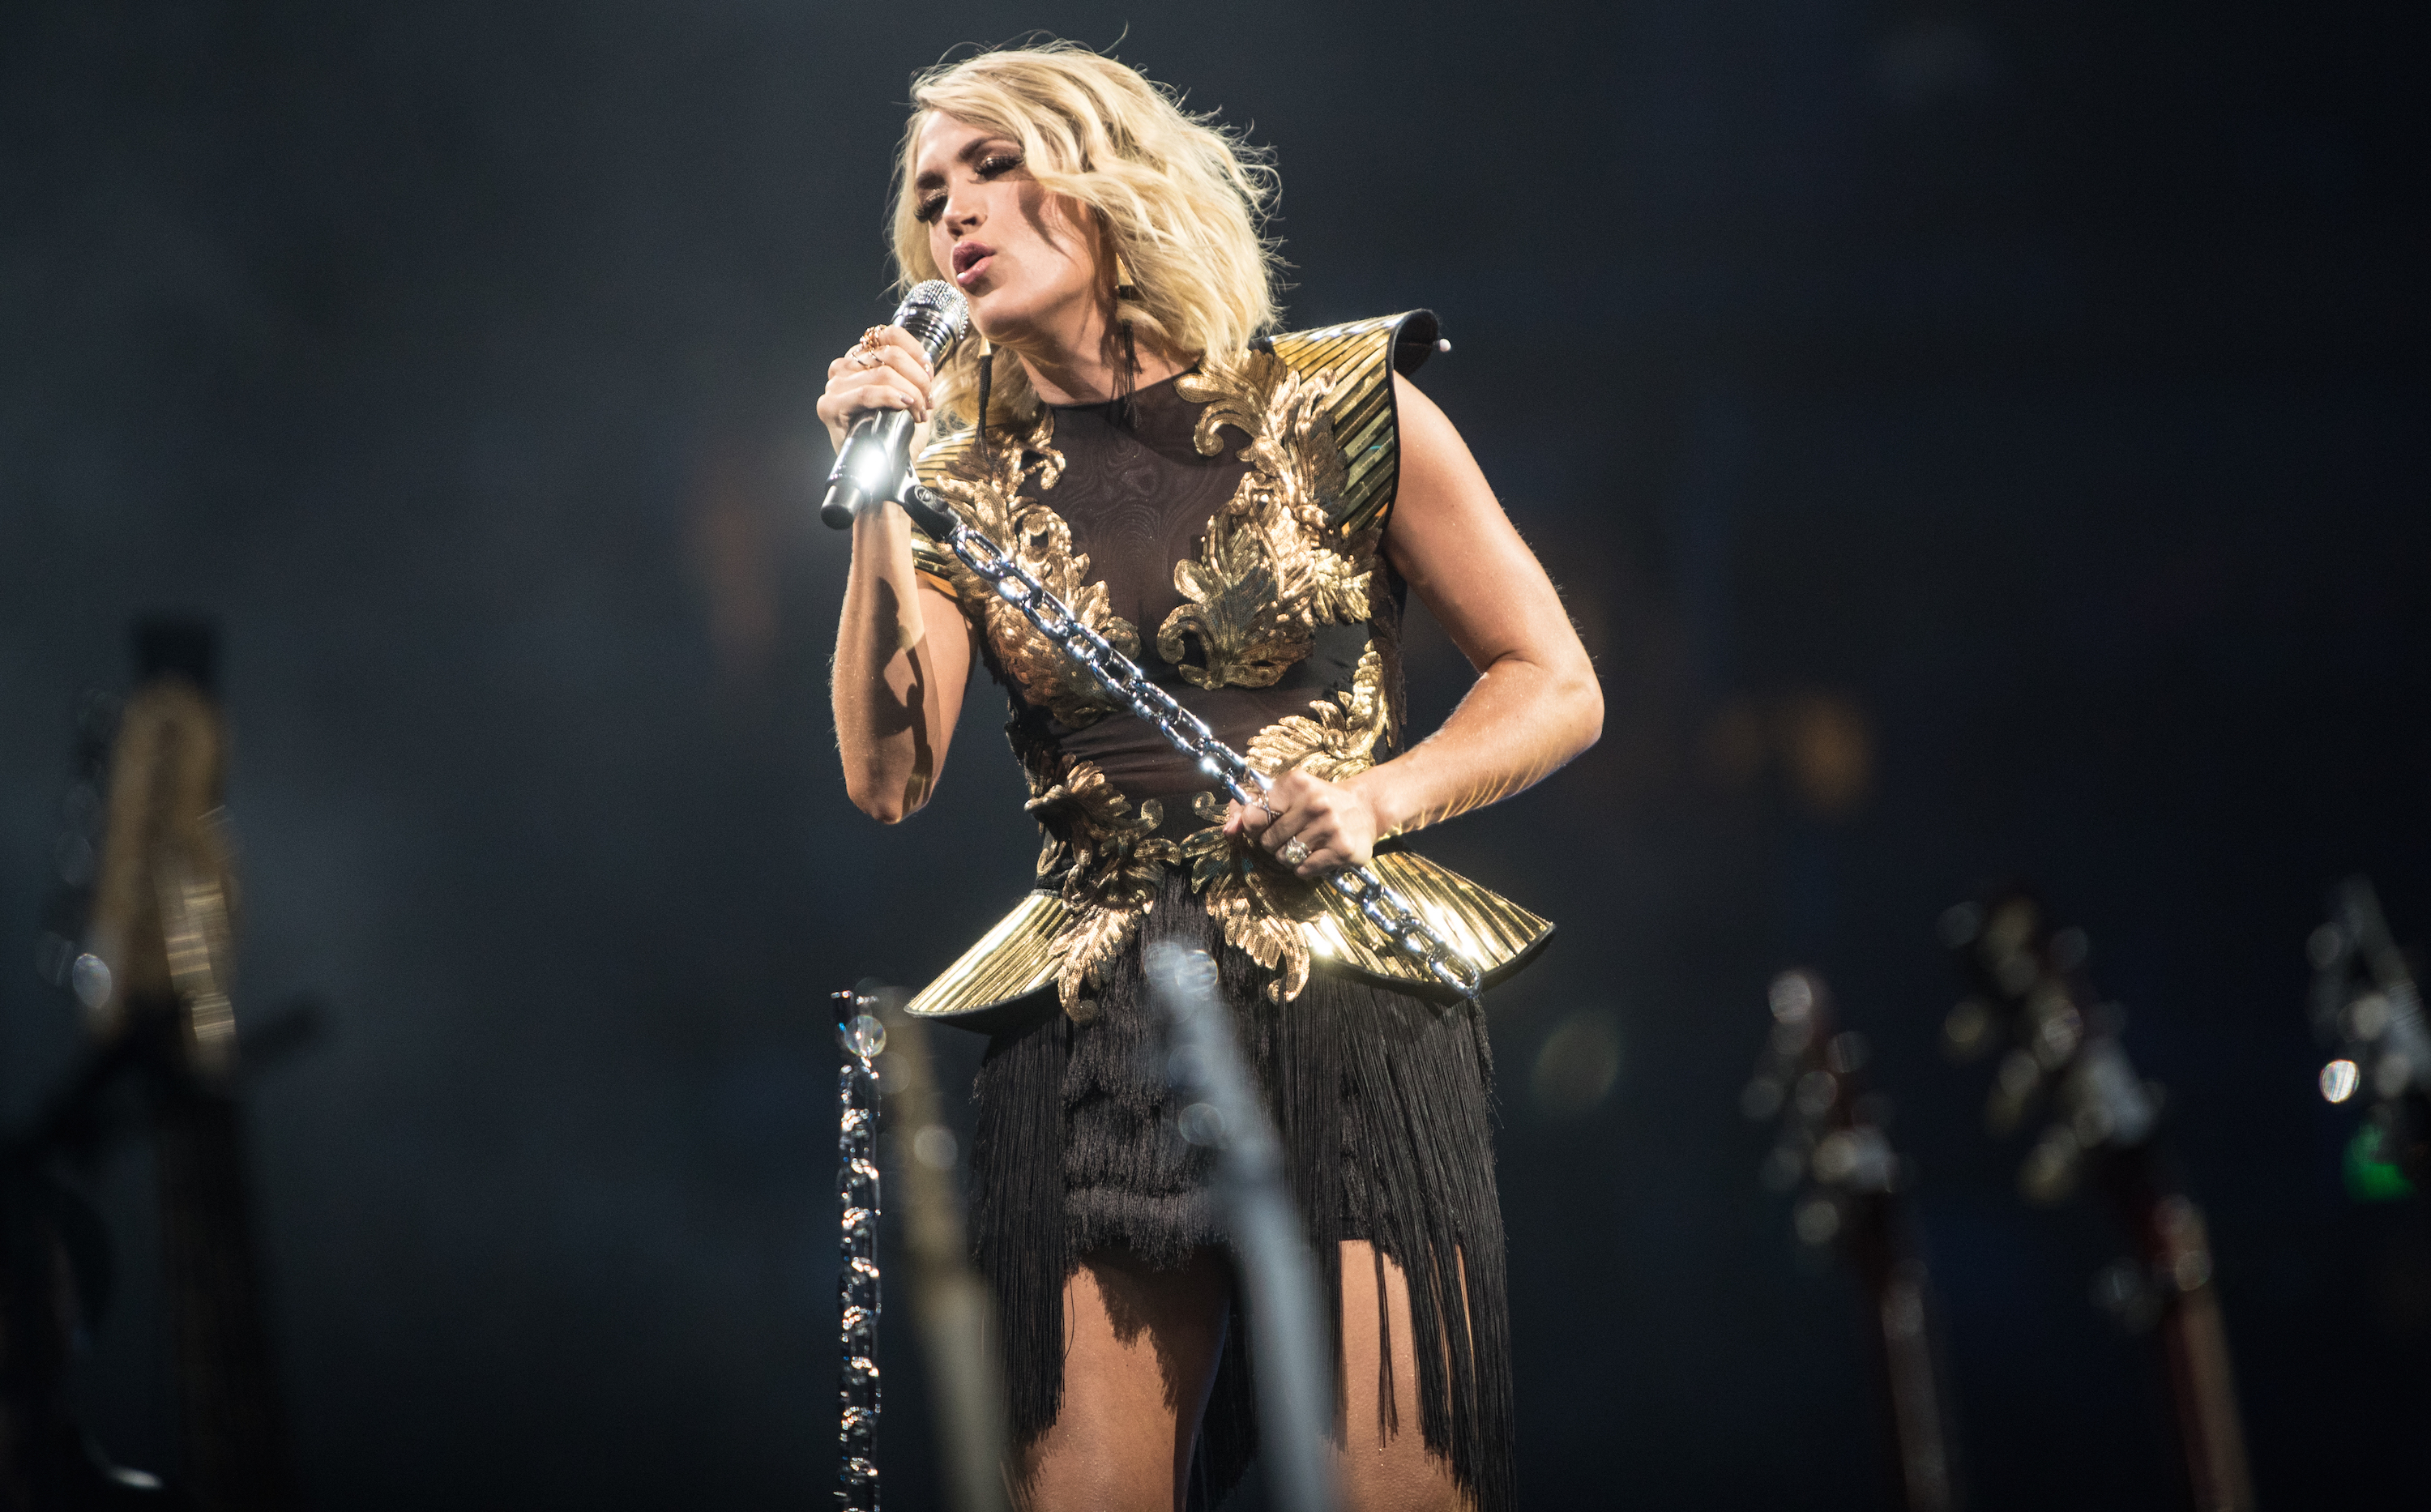 Listen now: Carrie Underwood says you can't